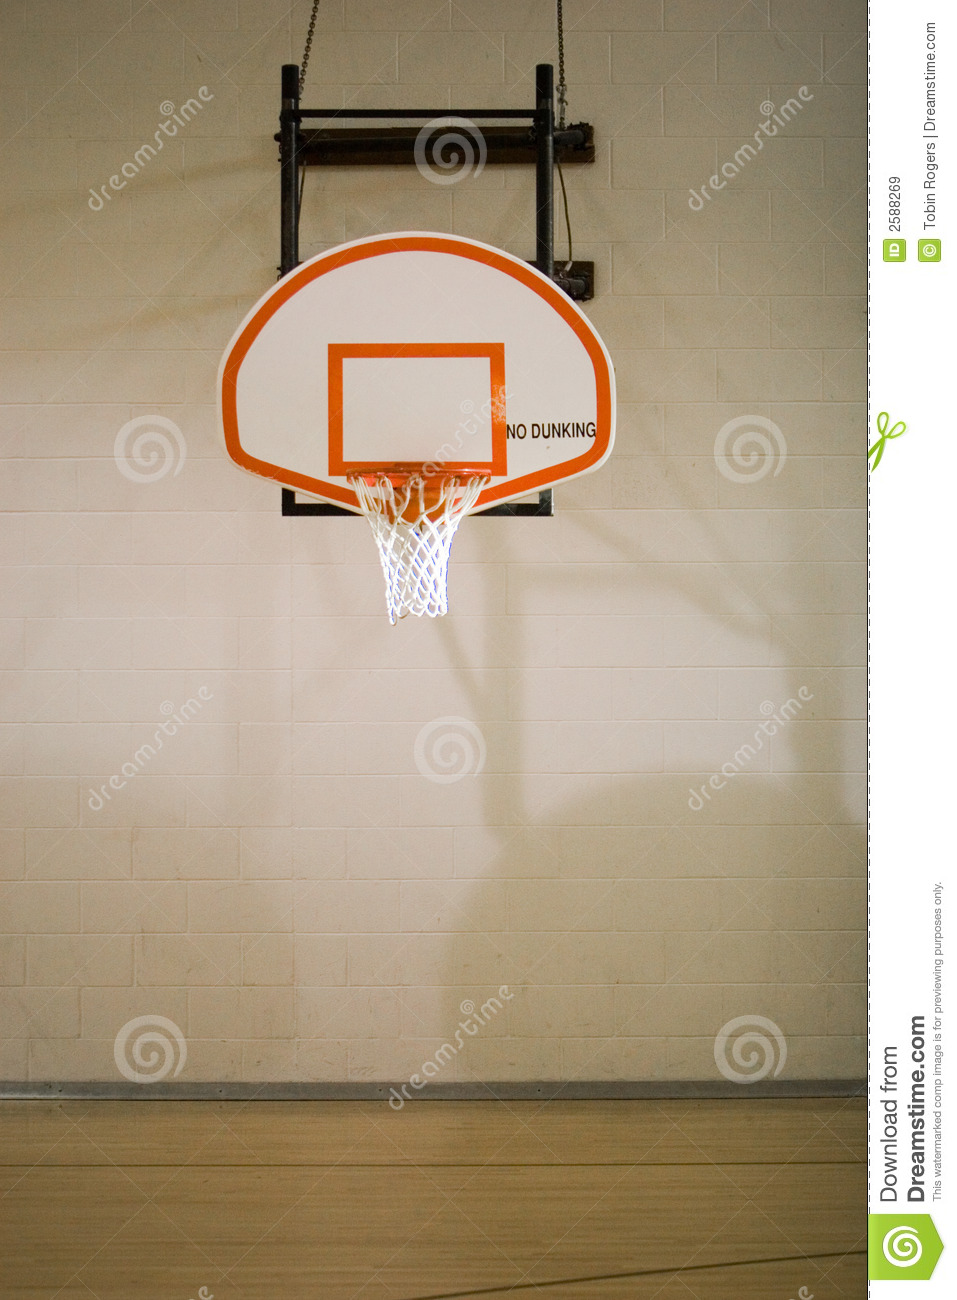 Basketball hoop and court stock image image of hoop for Sport court basketball hoop